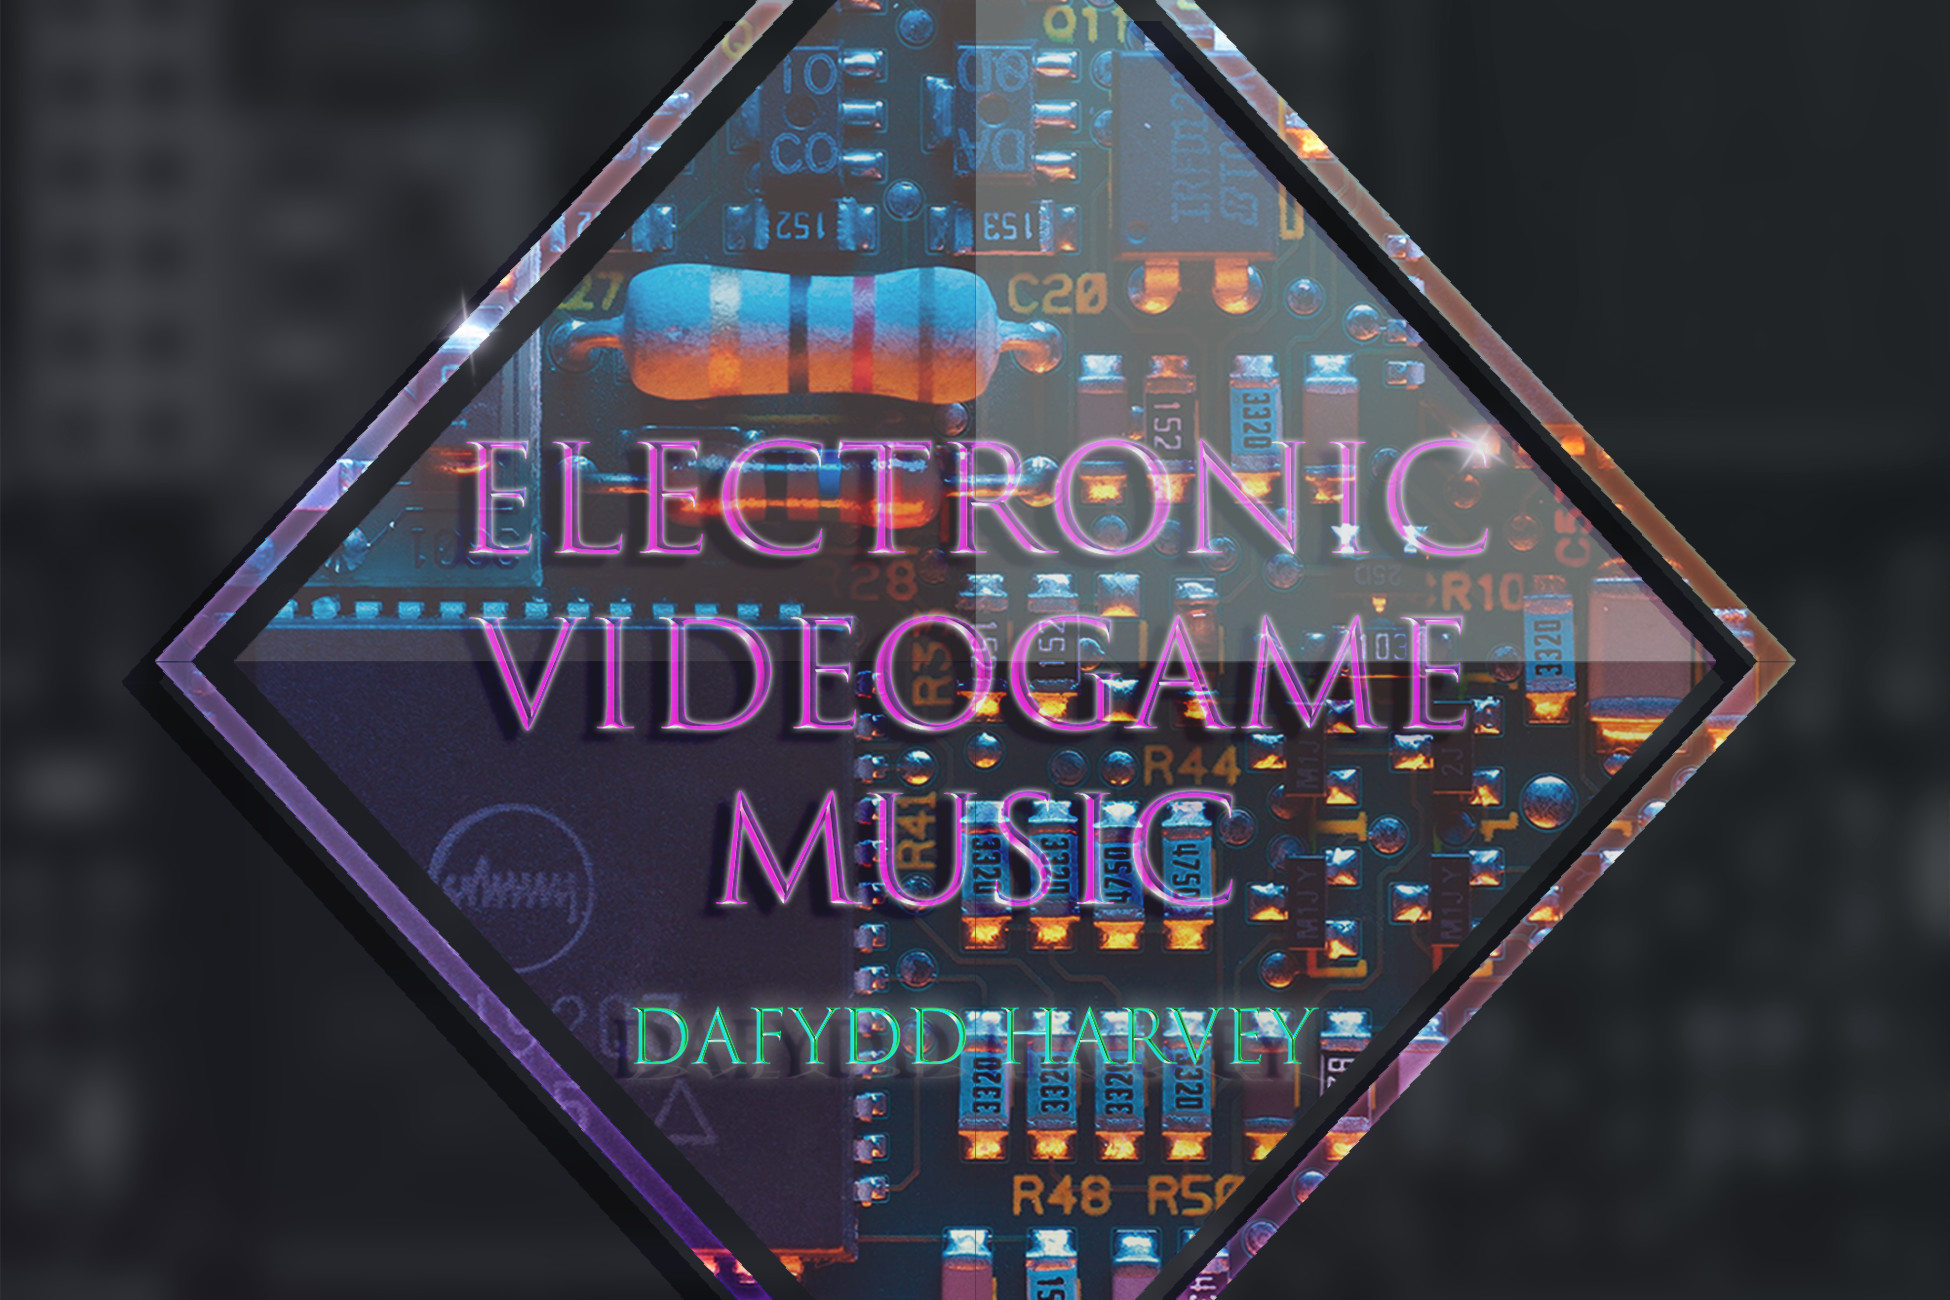 Electronic Videogame Music